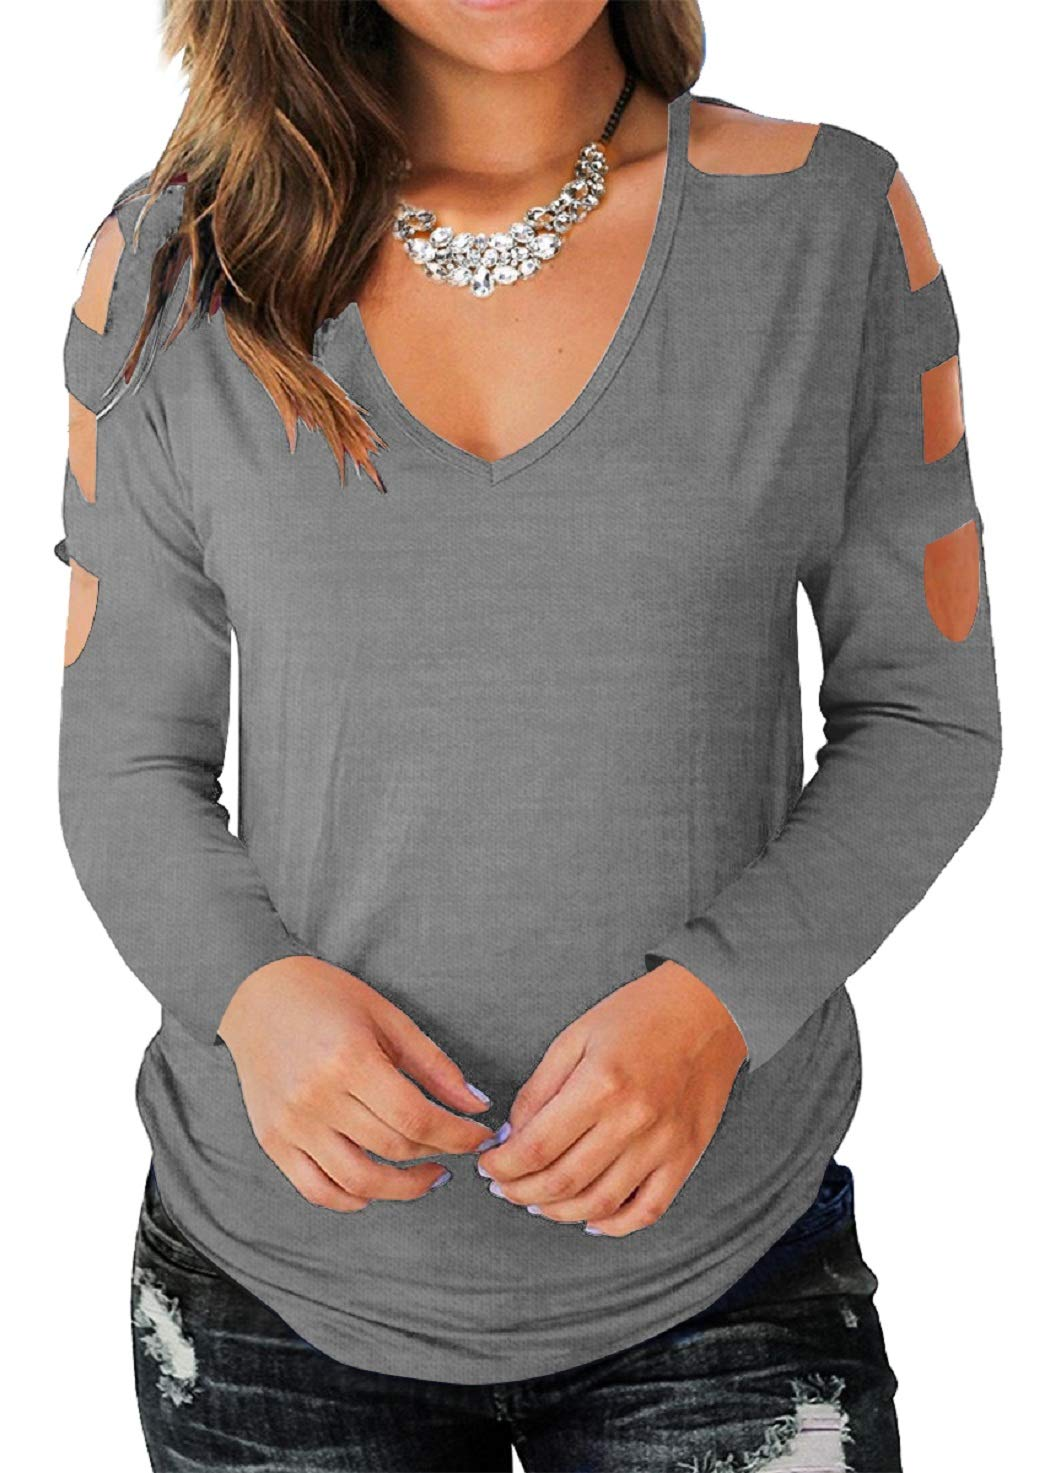 Eanklosco Women's Long Sleeve V Neck Cold Shoulder Cut Out T Shirts Casual Tunic Tops (L, Grey)